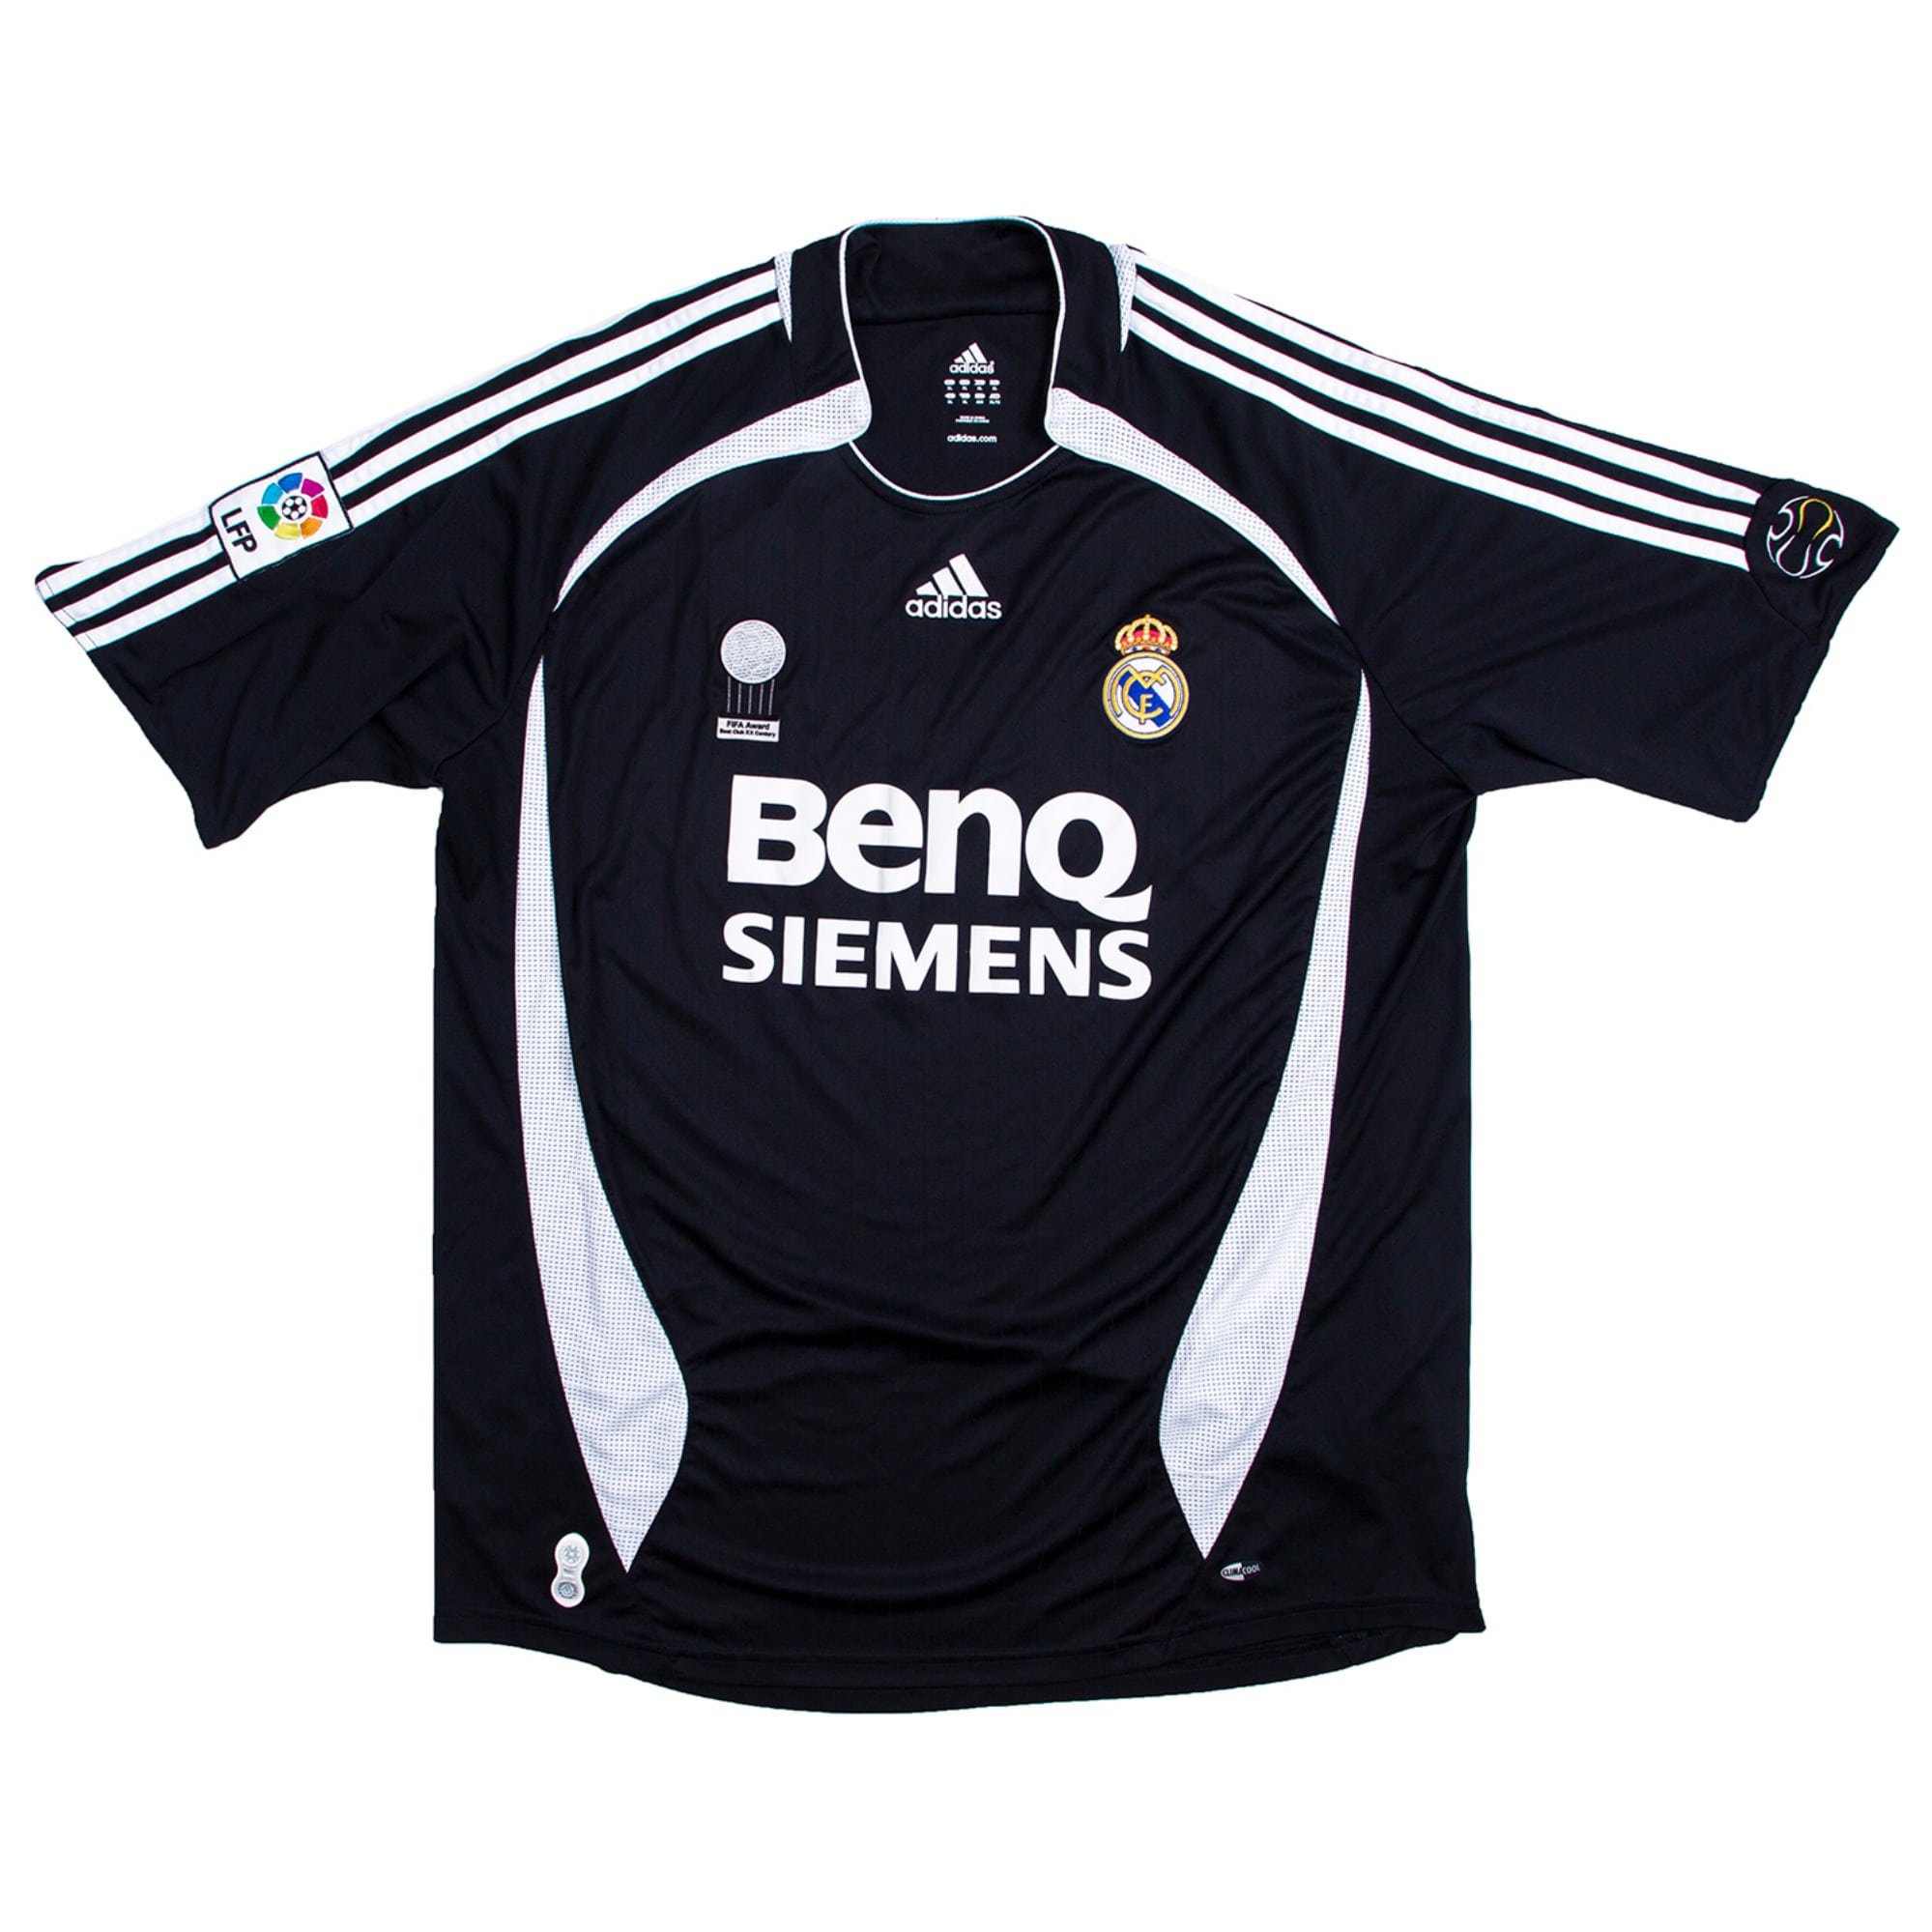 REAL MADRID 06-07 AWAY JERSEY S/S